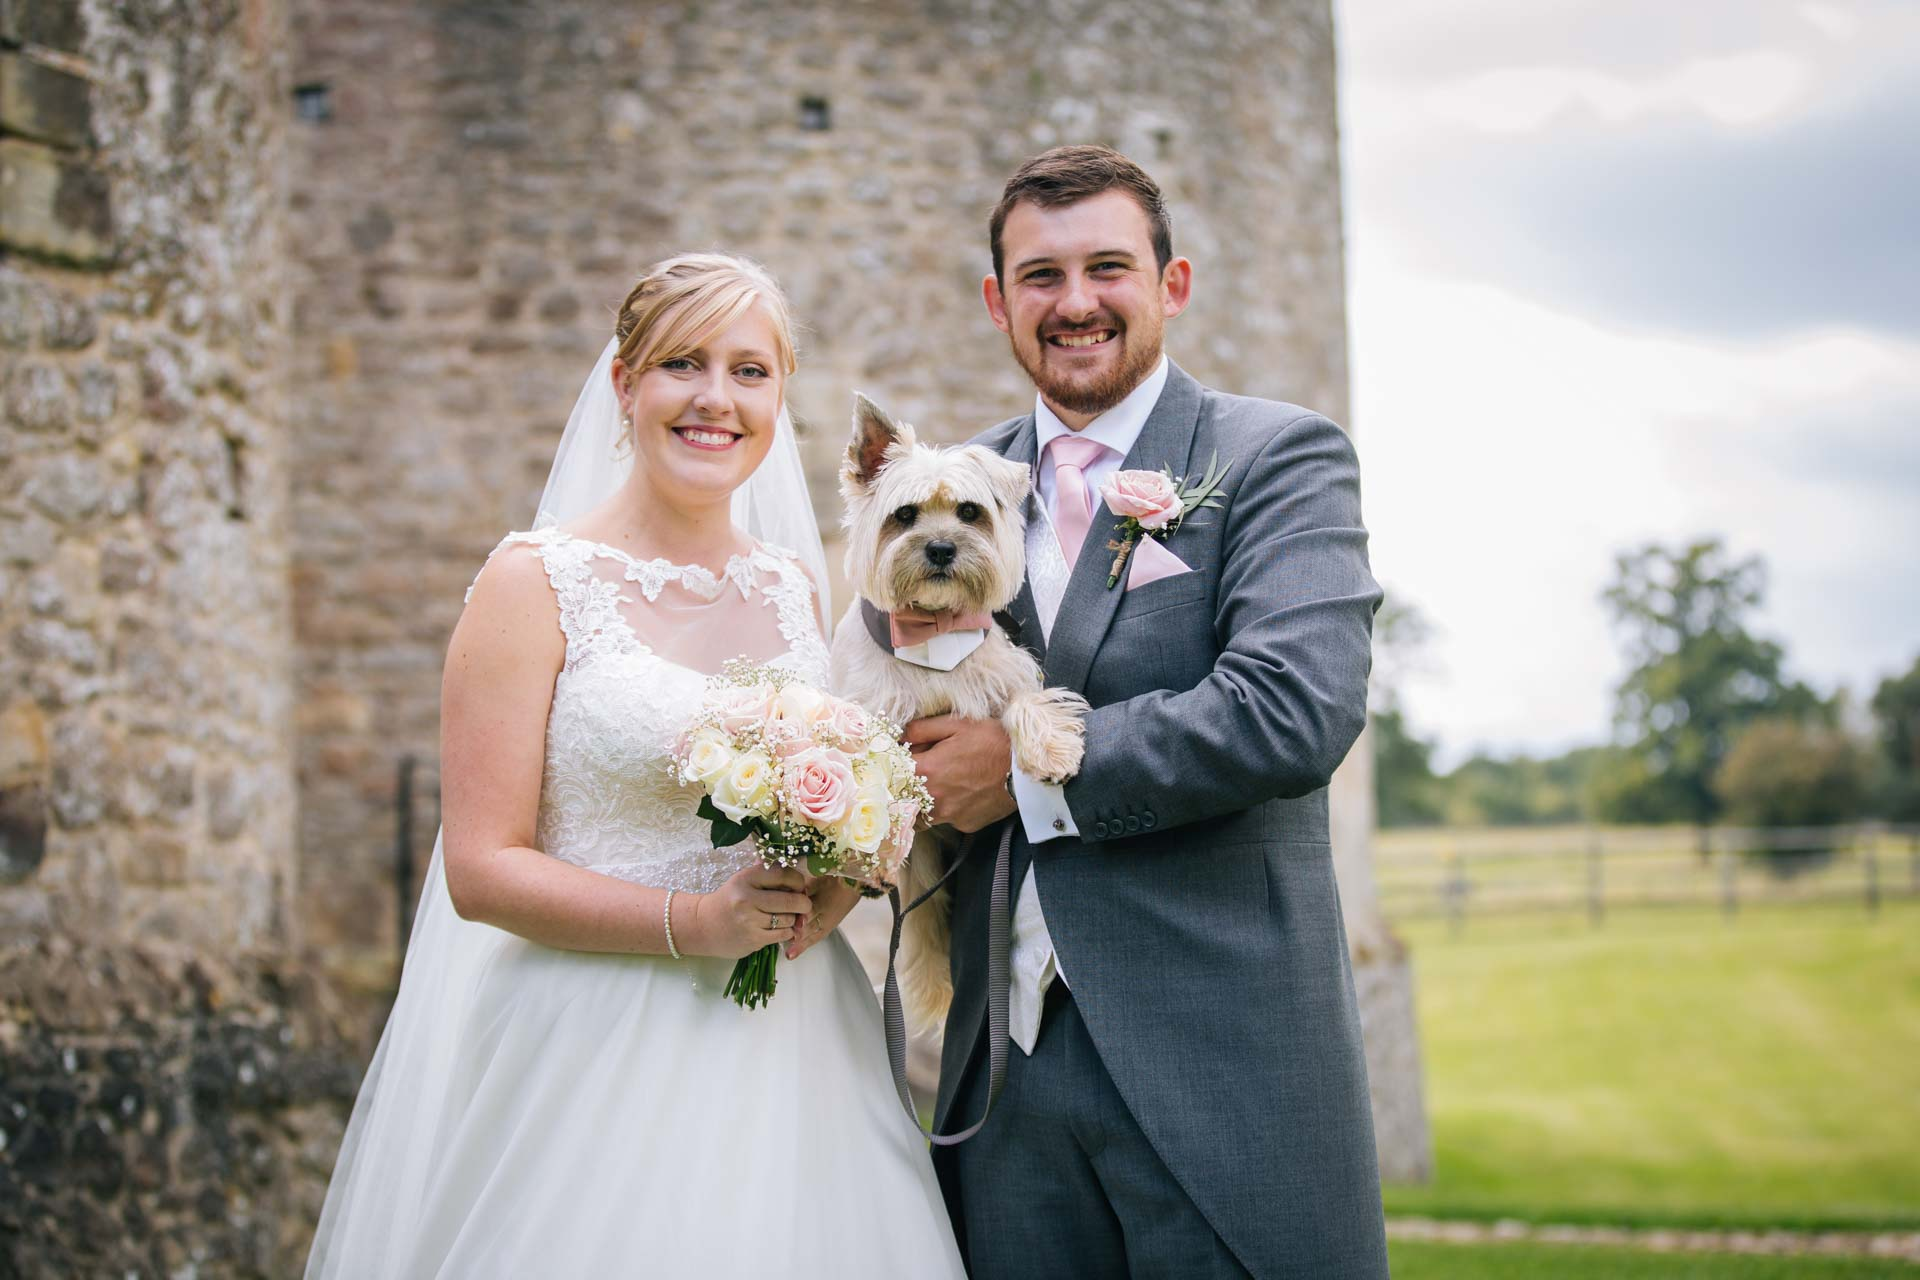 Sophie & Jack's Summer Wedding in Kent - Joanna Eardley Photography